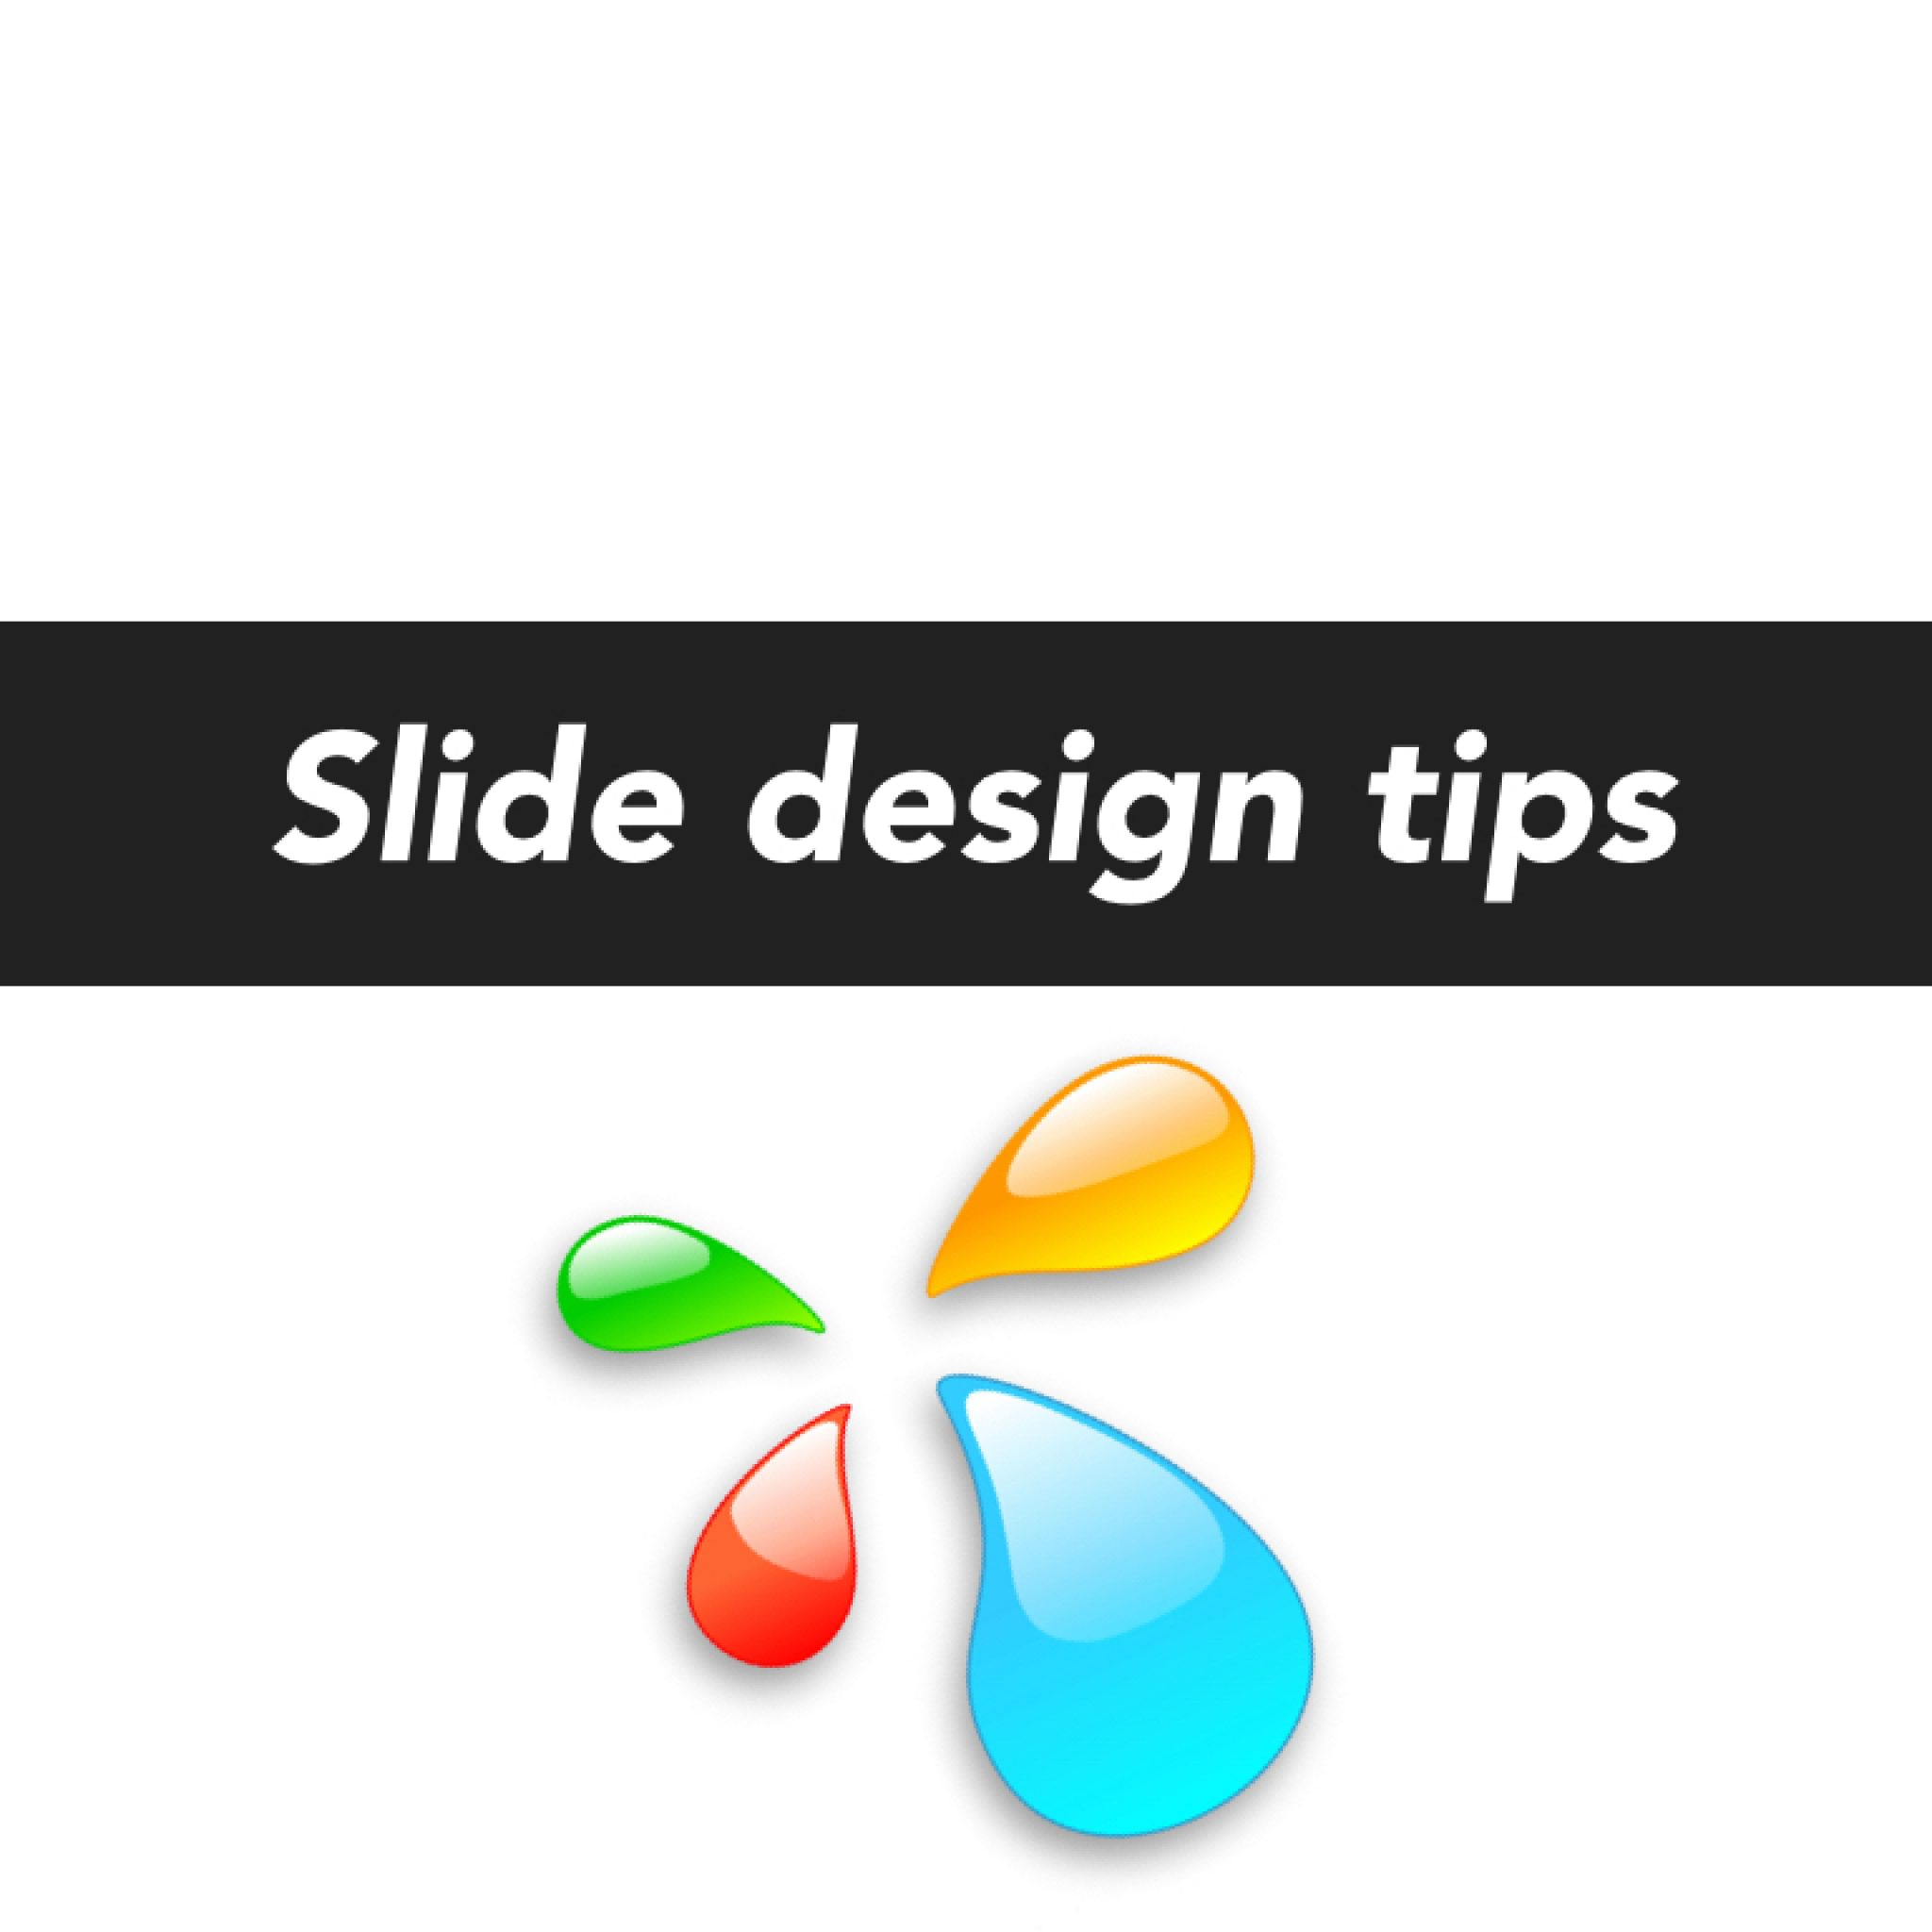 Slide design: Quick presentation tips